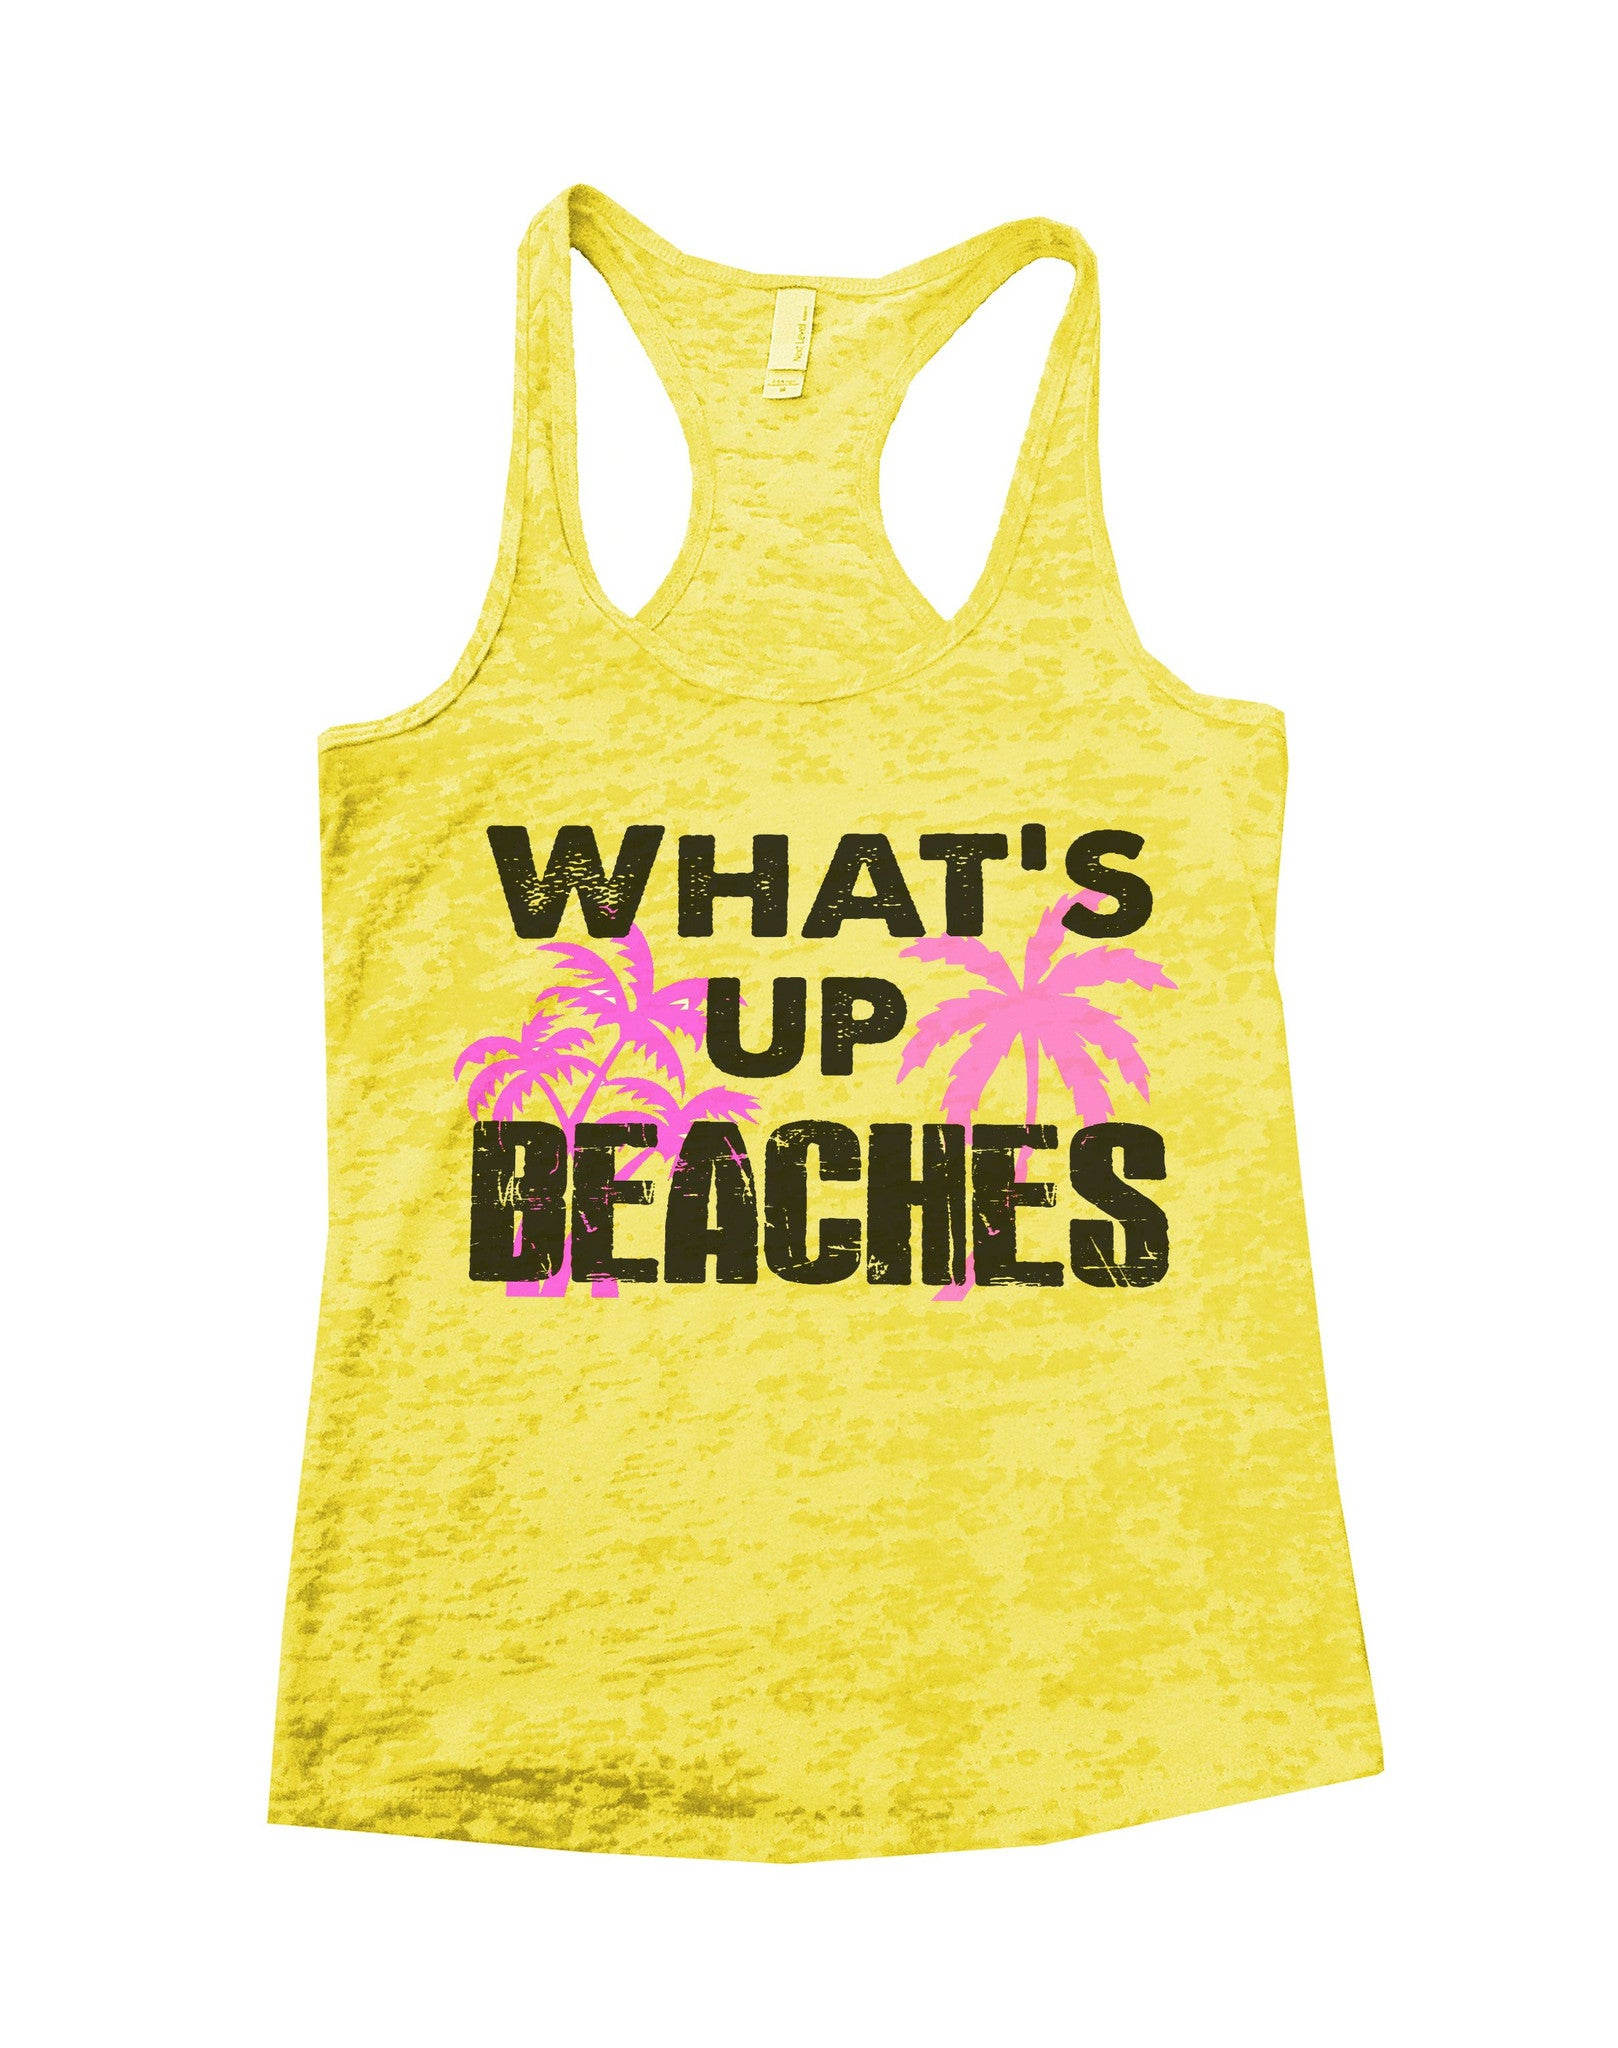 What'S Up Beaches Burnout Tank Top By BurnoutTankTops.com - 759 - Funny Shirts Tank Tops Burnouts and Triblends  - 5